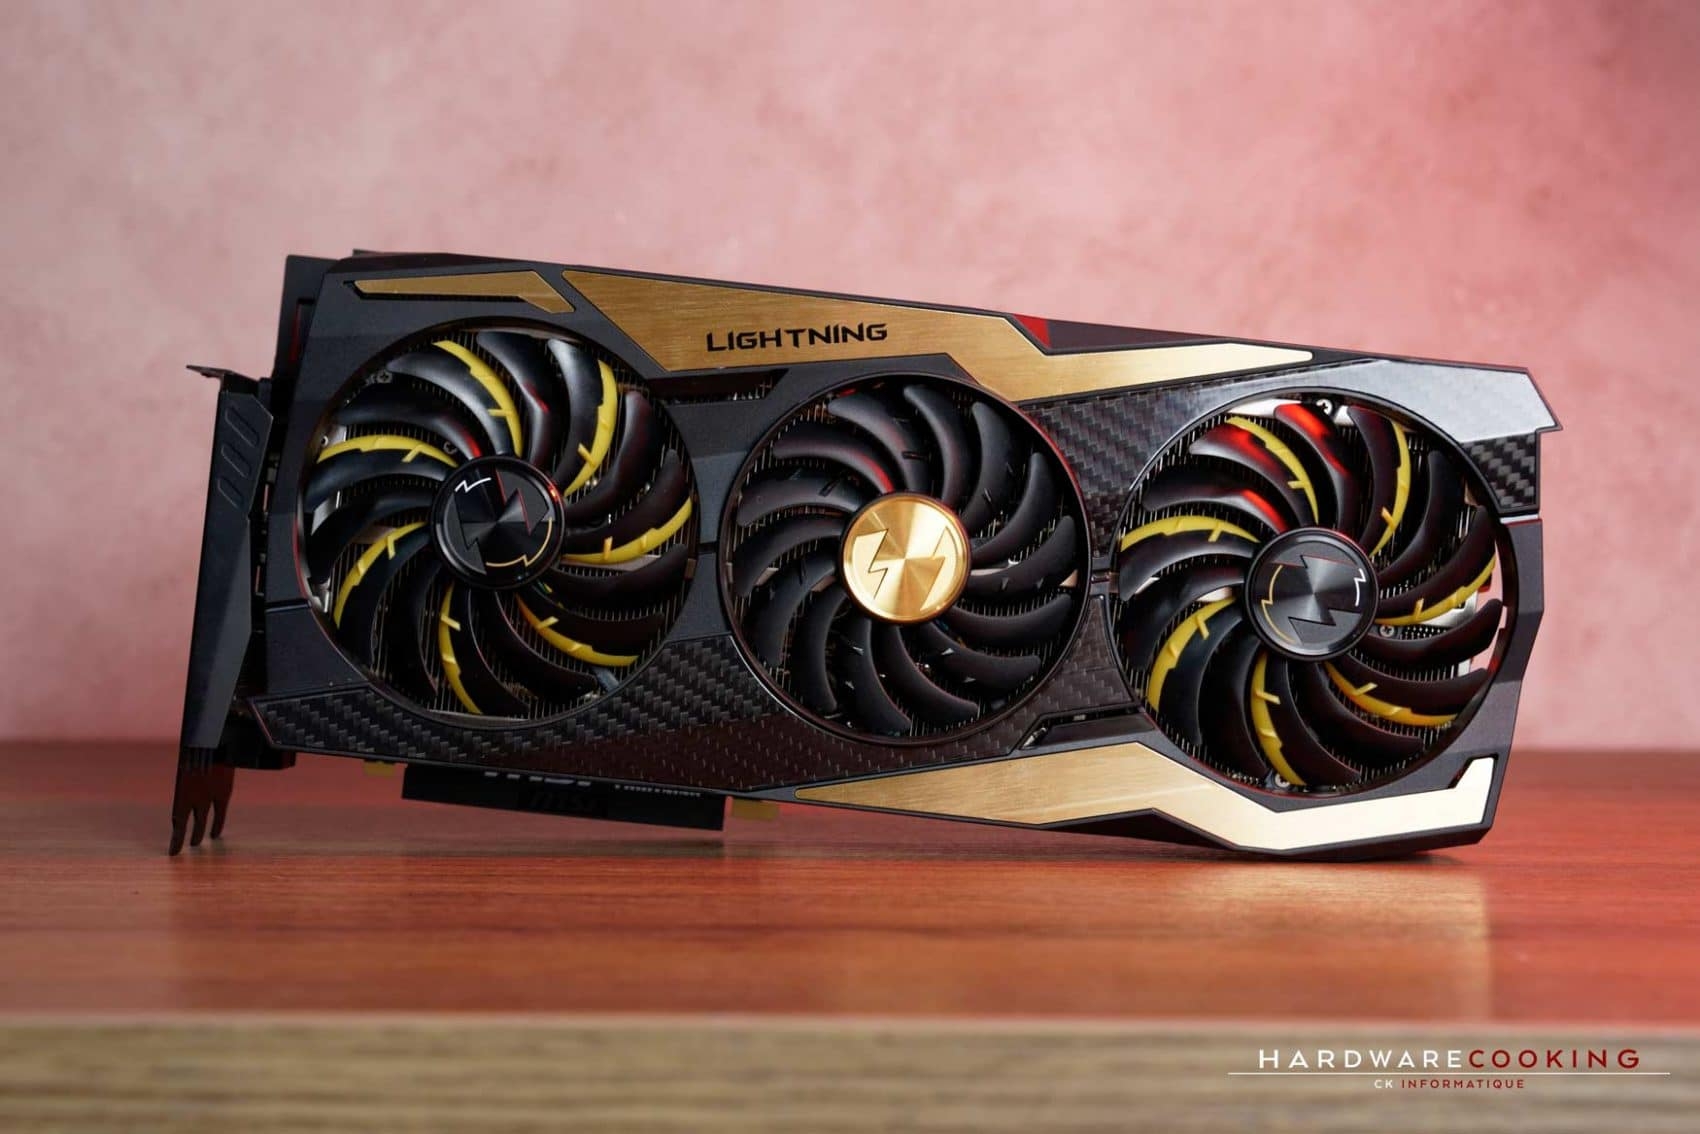 Packaging carte graphique MSI RTX 2080 Ti Lightning Z